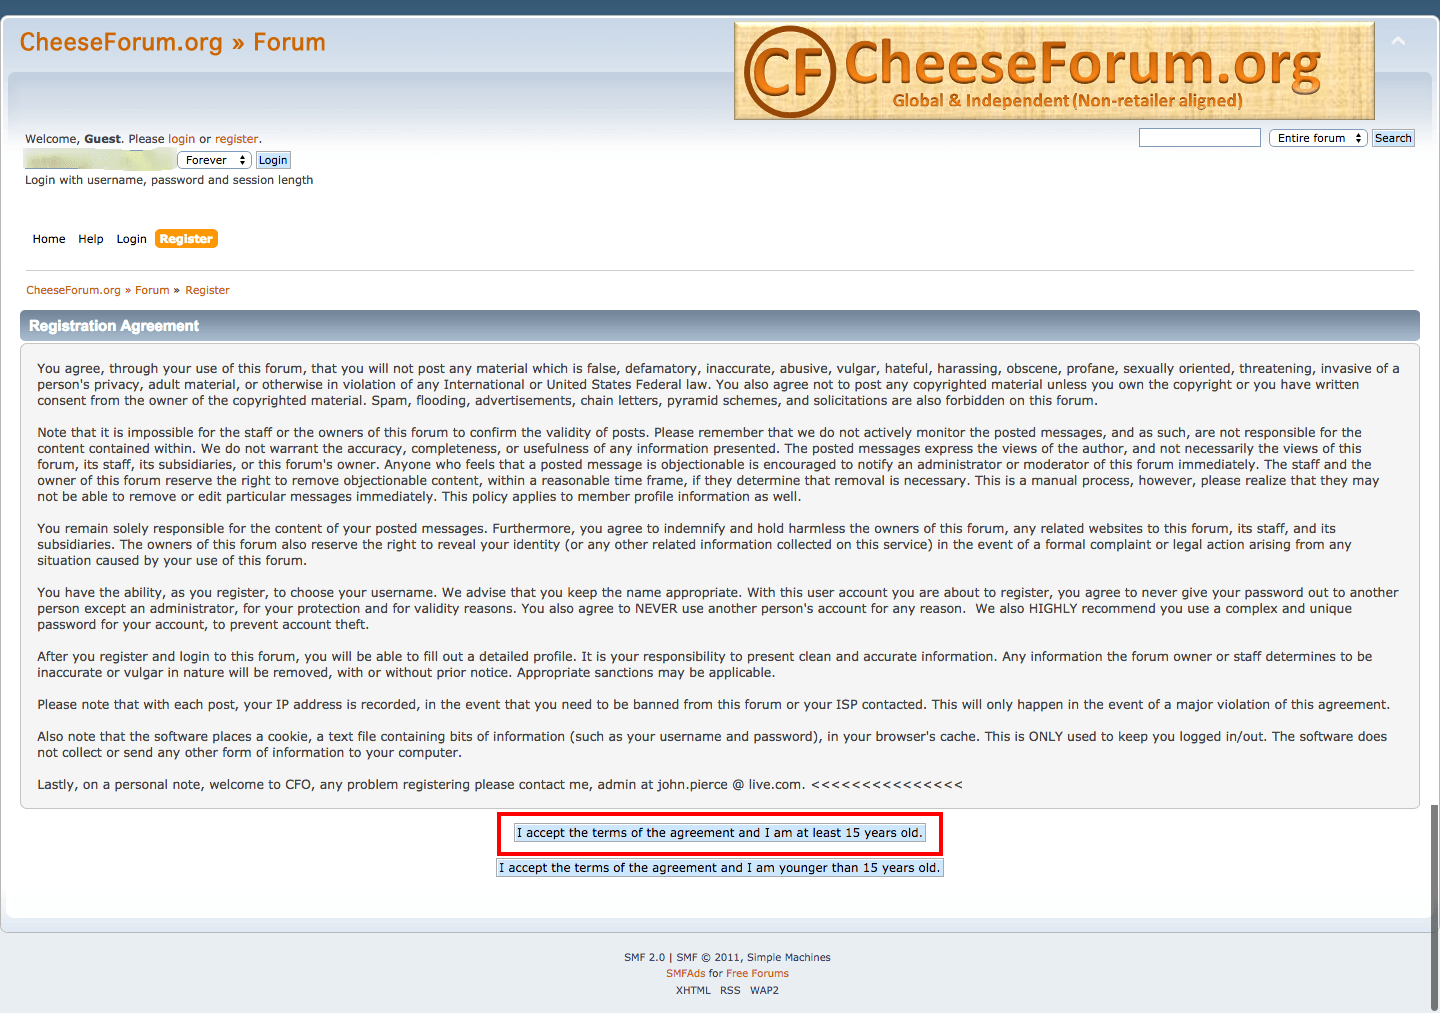 Cheese forum user agreement